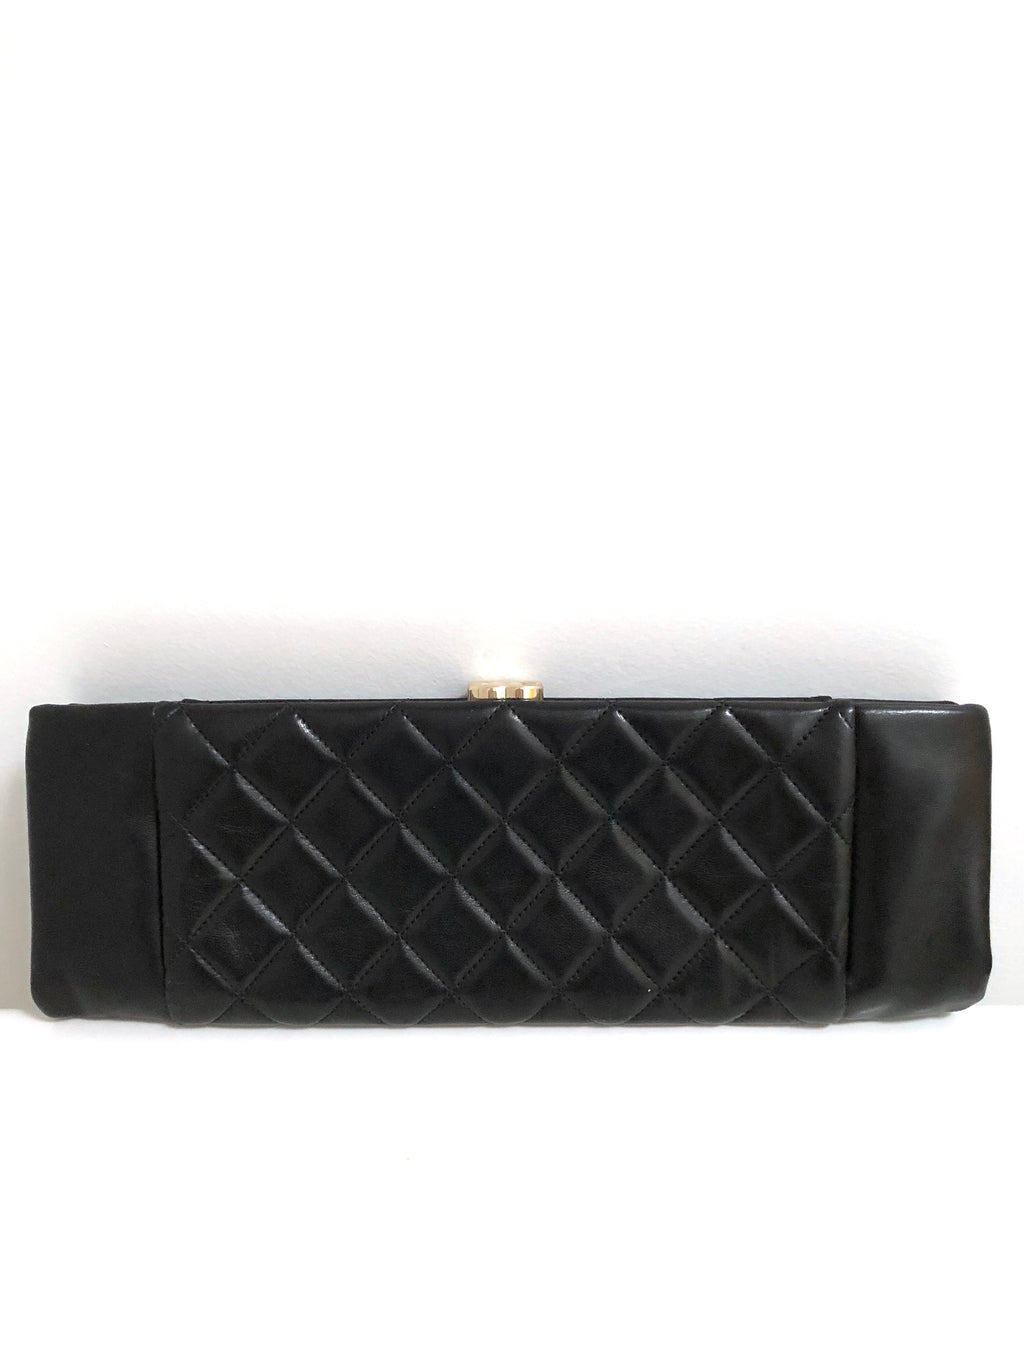 Chanel Quilted Black Leather East West Clutch with CC Clasp